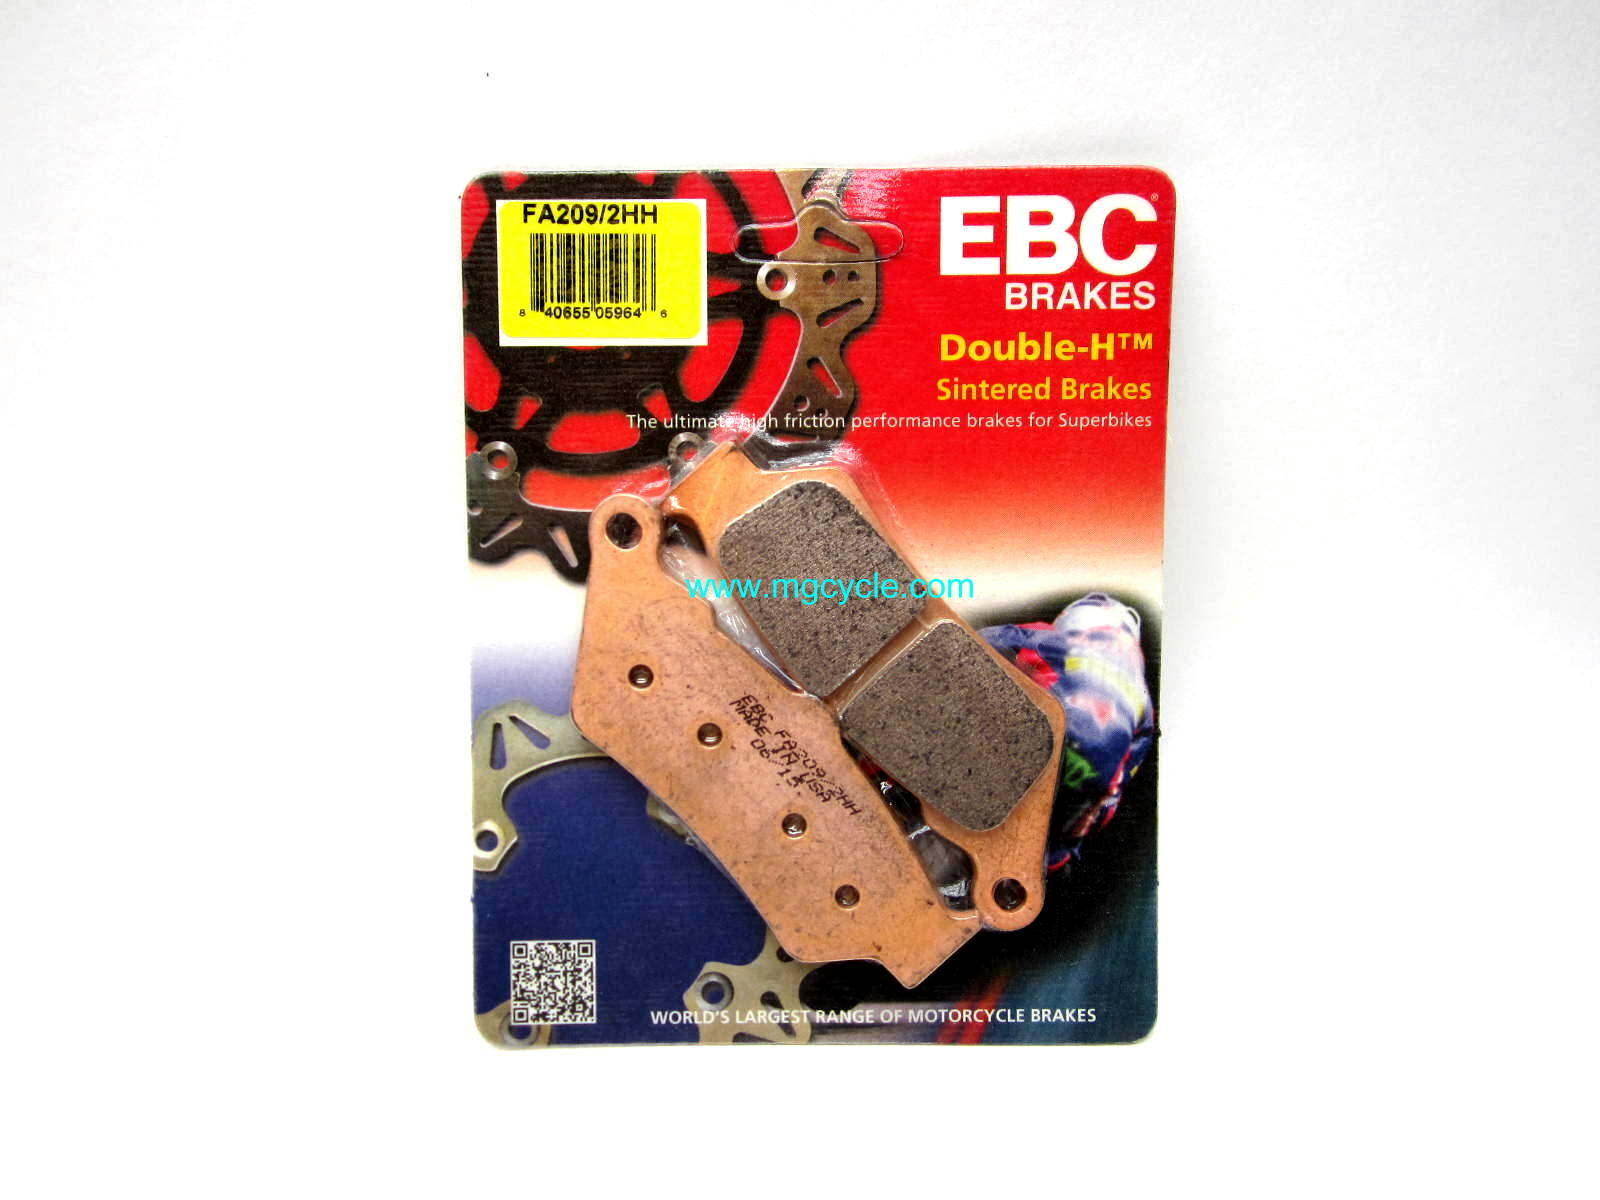 EBC sintered brake pad, rear '97+1100 Cali's/1400s Quota front